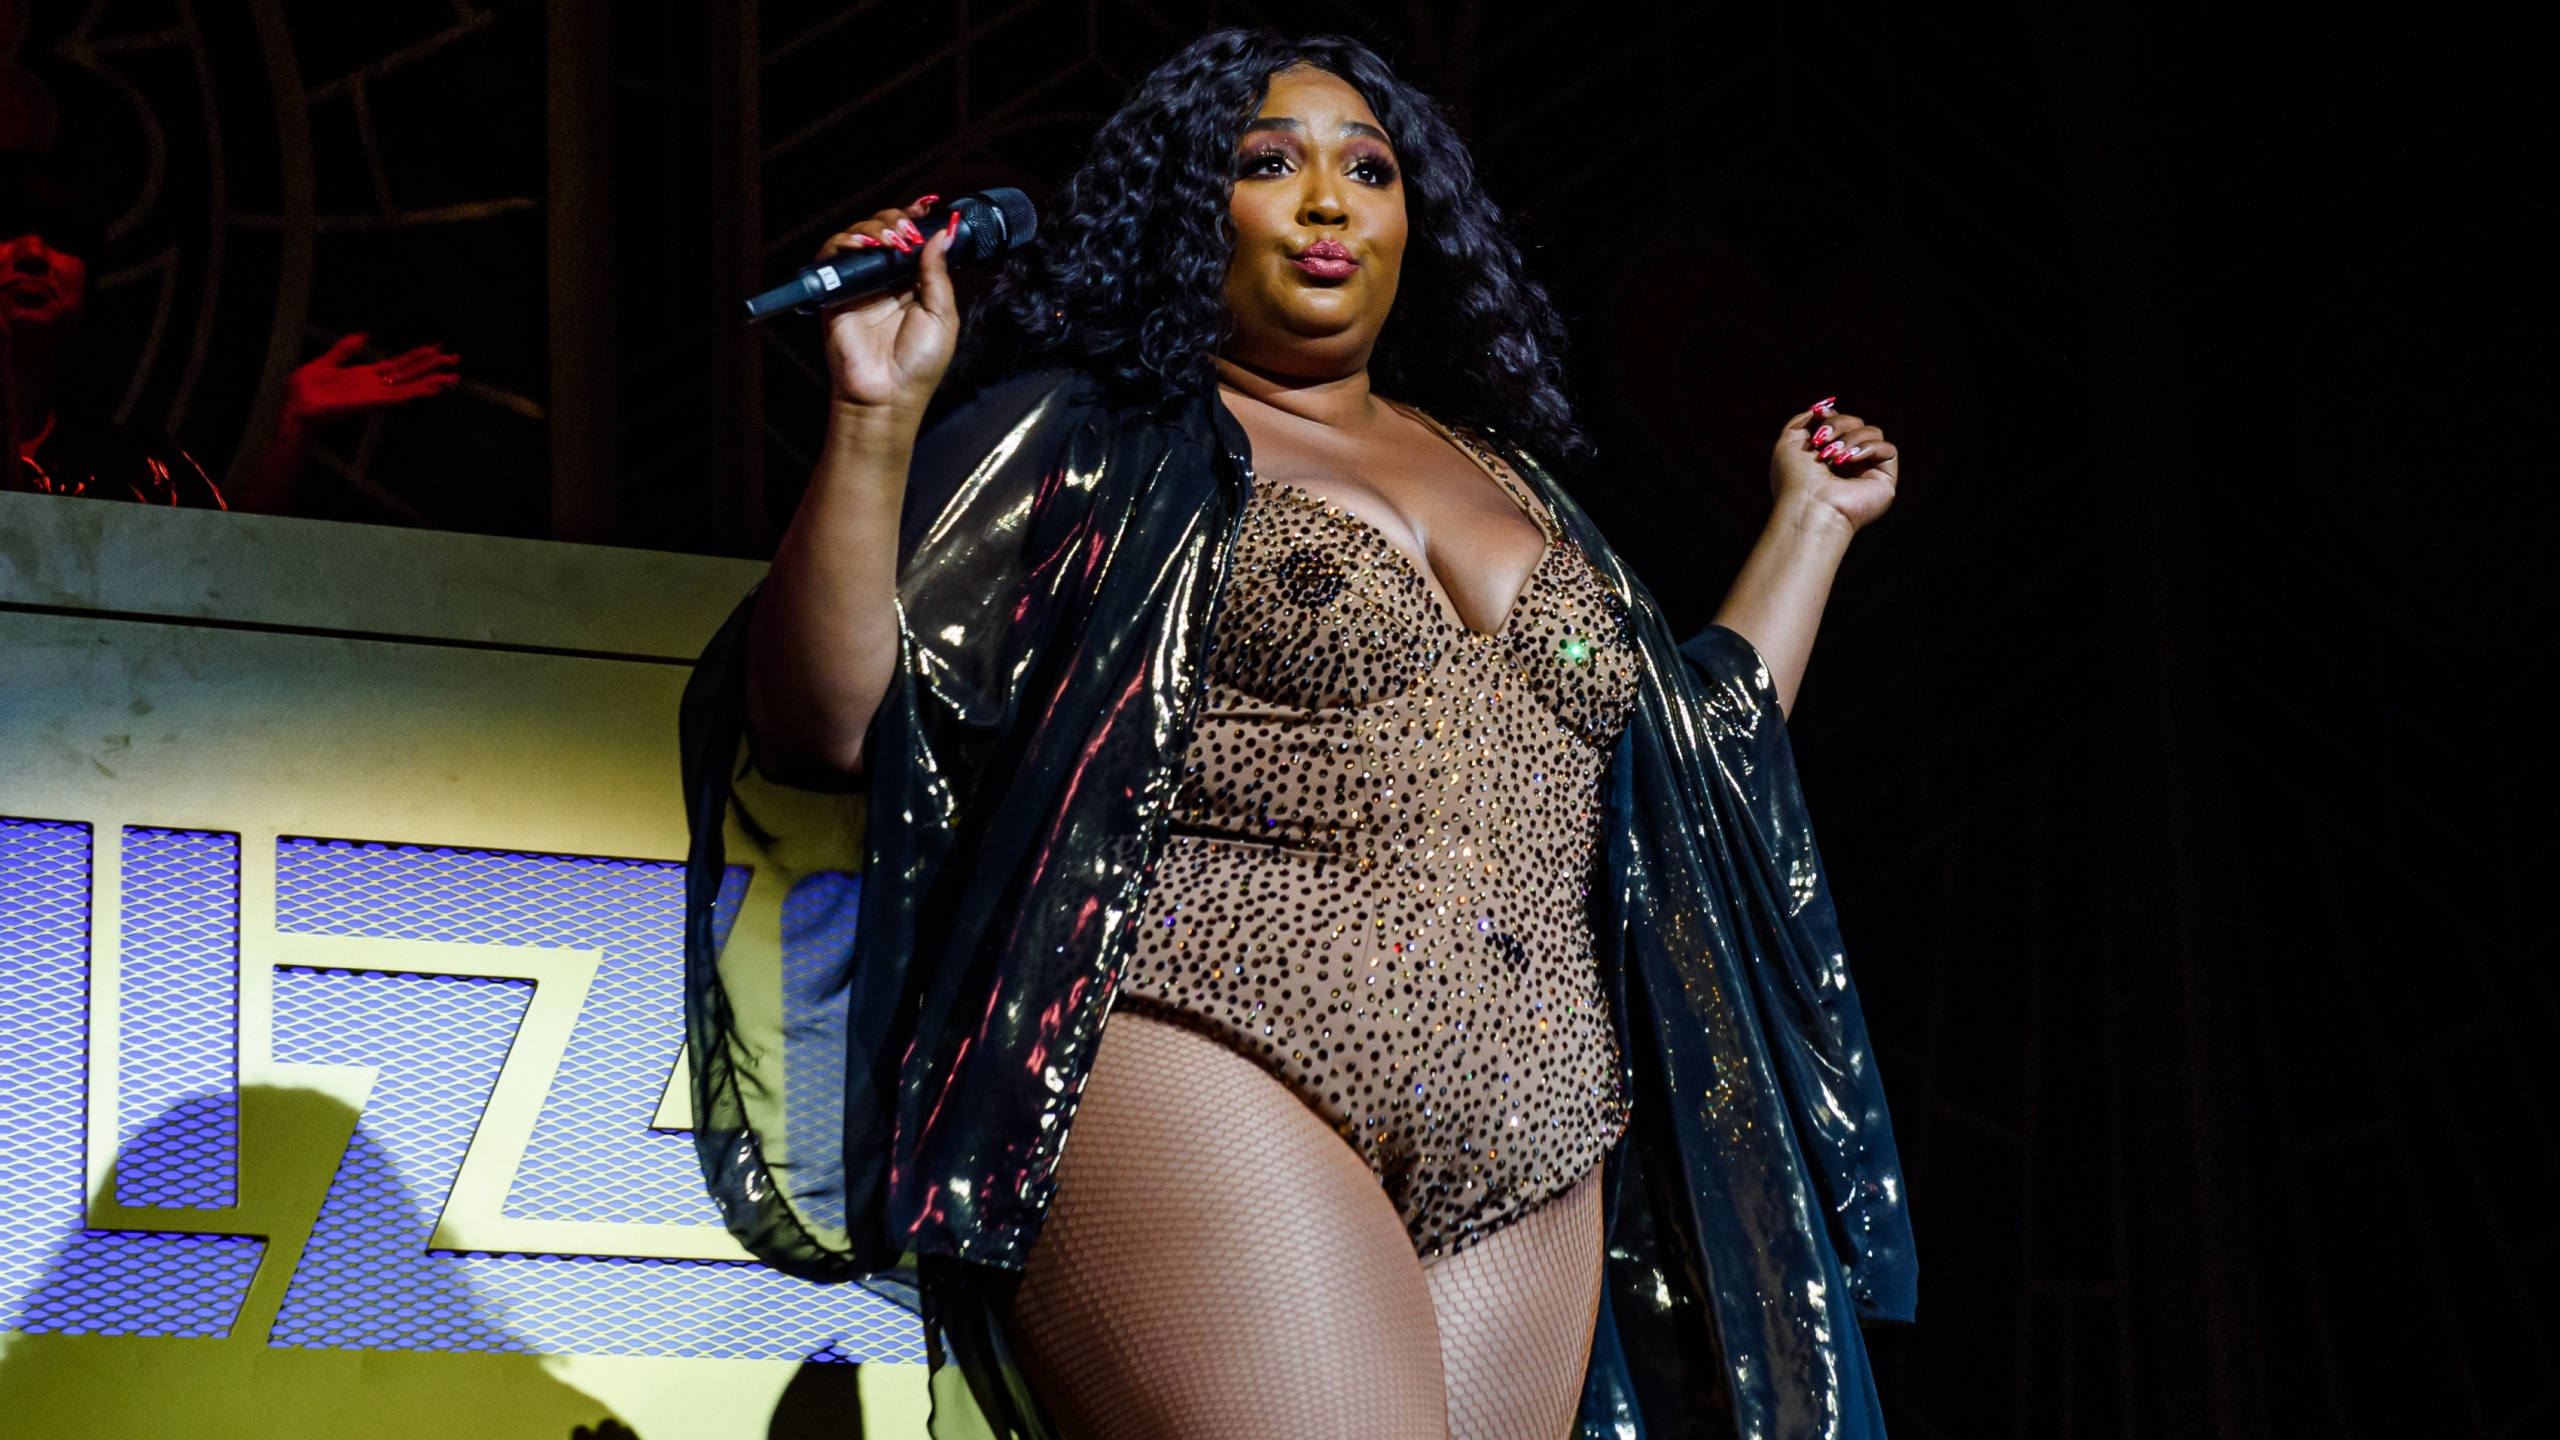 Lizzo to perform, ring in the New Year at the Cosmopolitan